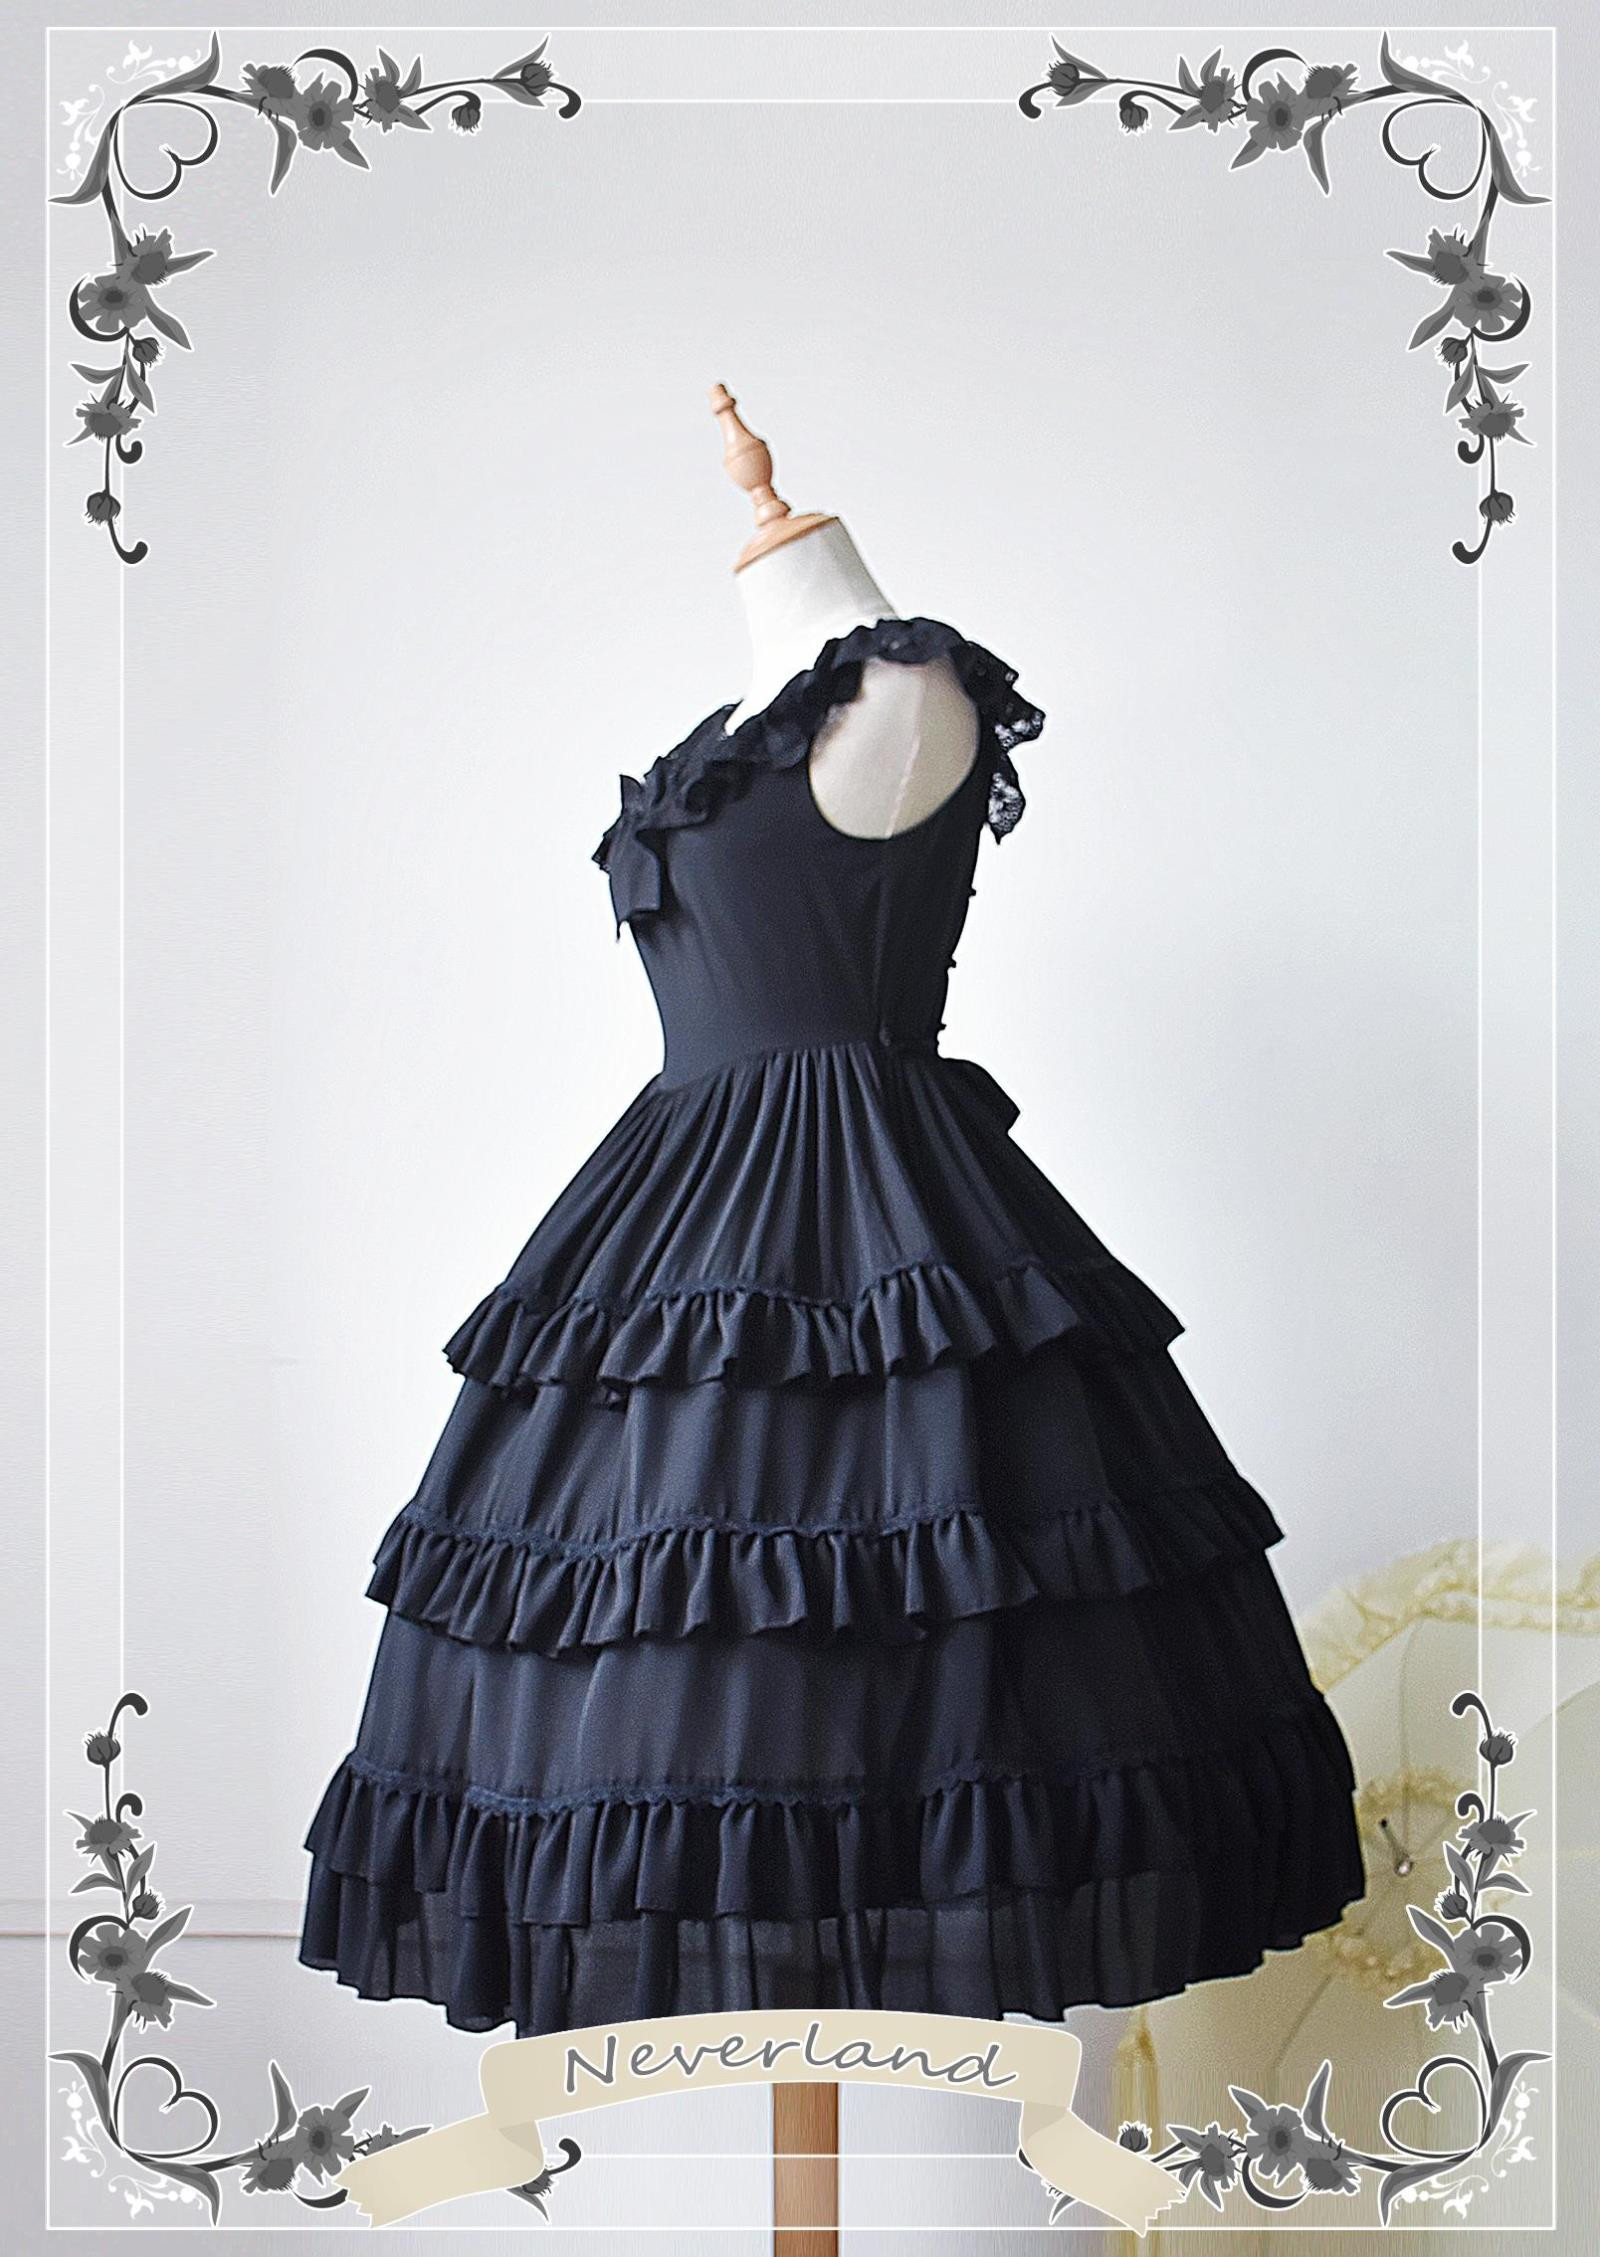 Colorful Fairy Tales Chiffon Tailored Neverland Lolita Jumper Dress